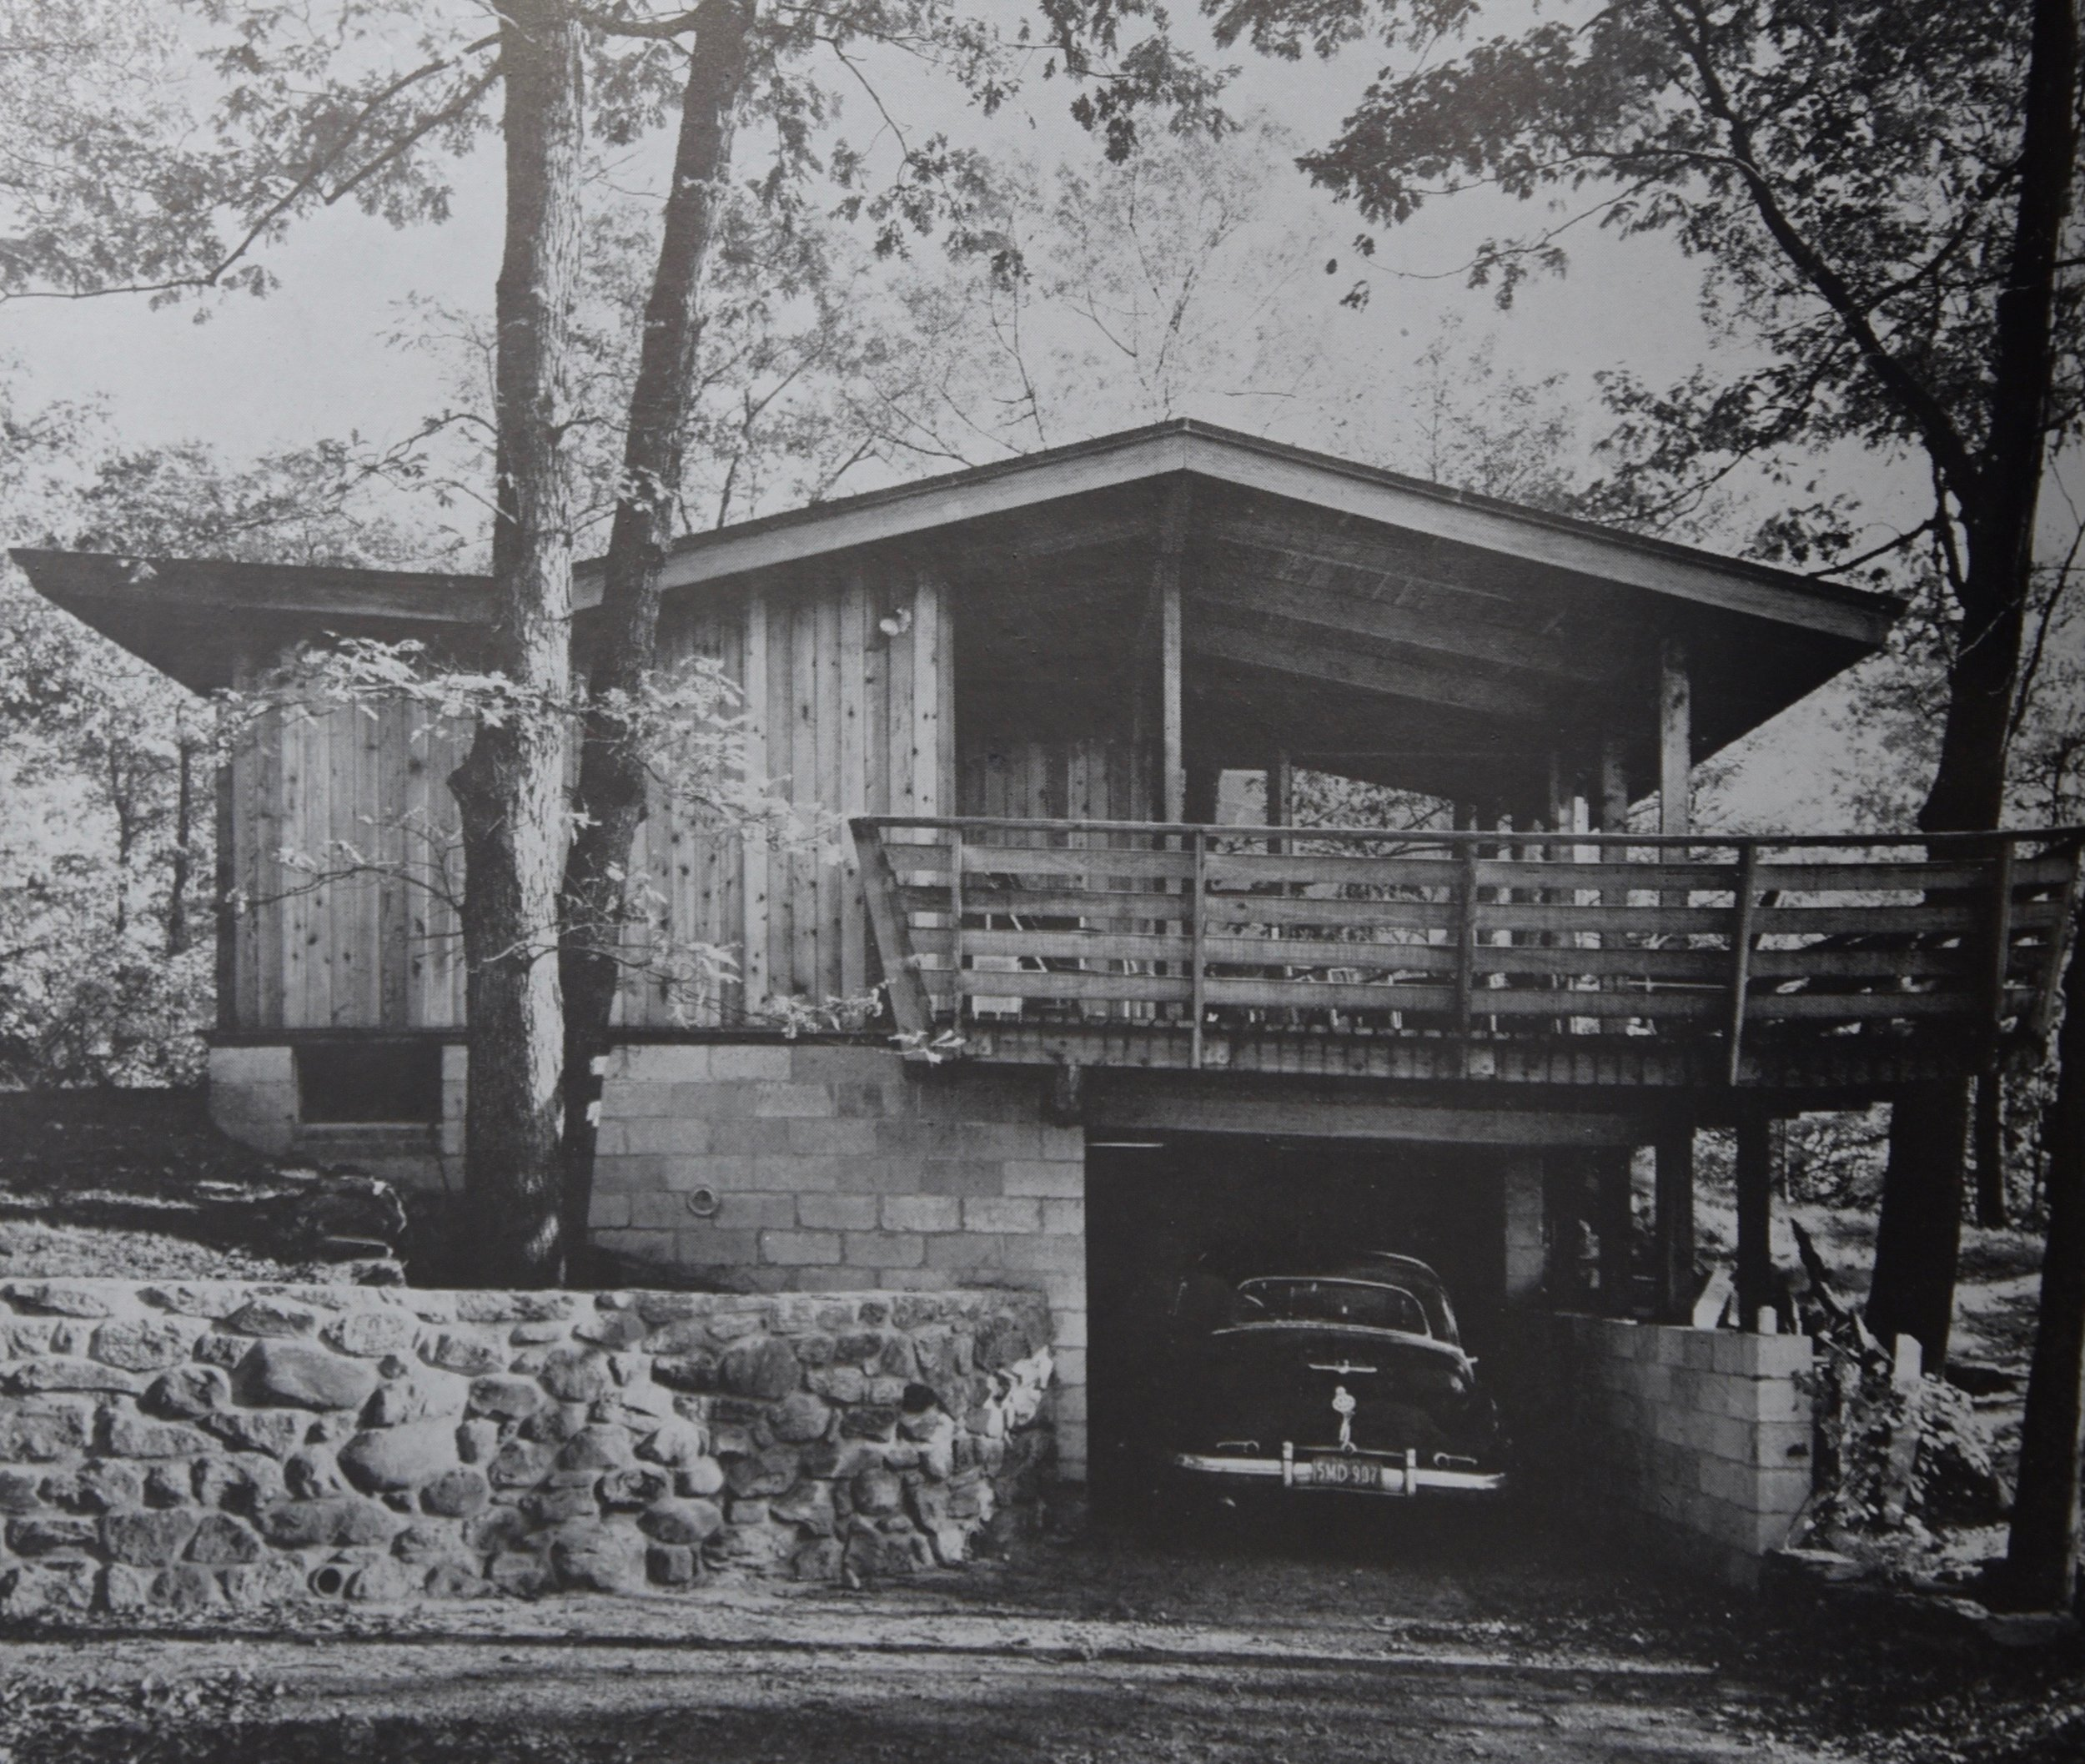 Our House photographed just after completion, 1950. PHOTOgrapher: Lionel Freedman